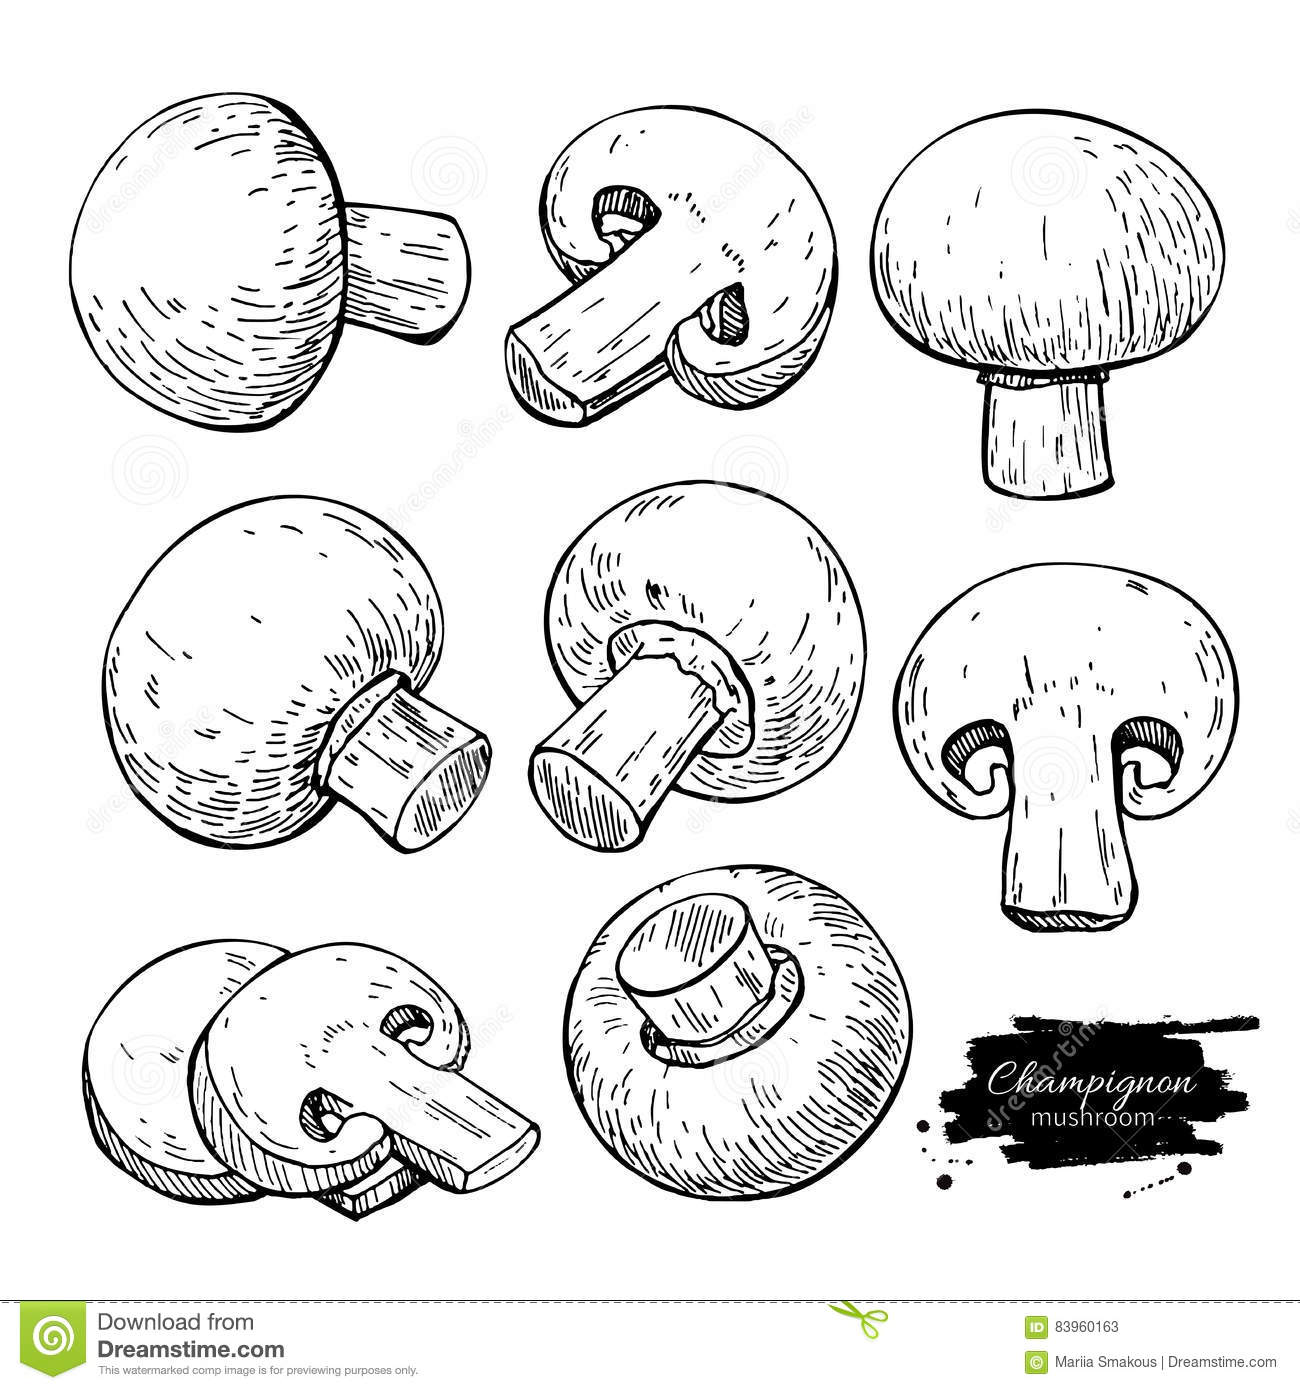 09c5d0e6e60 Champignon mushroom hand drawn vector illustration set. Sketch food drawing  isolated on white background. Organic vegetarian product. Great for menu